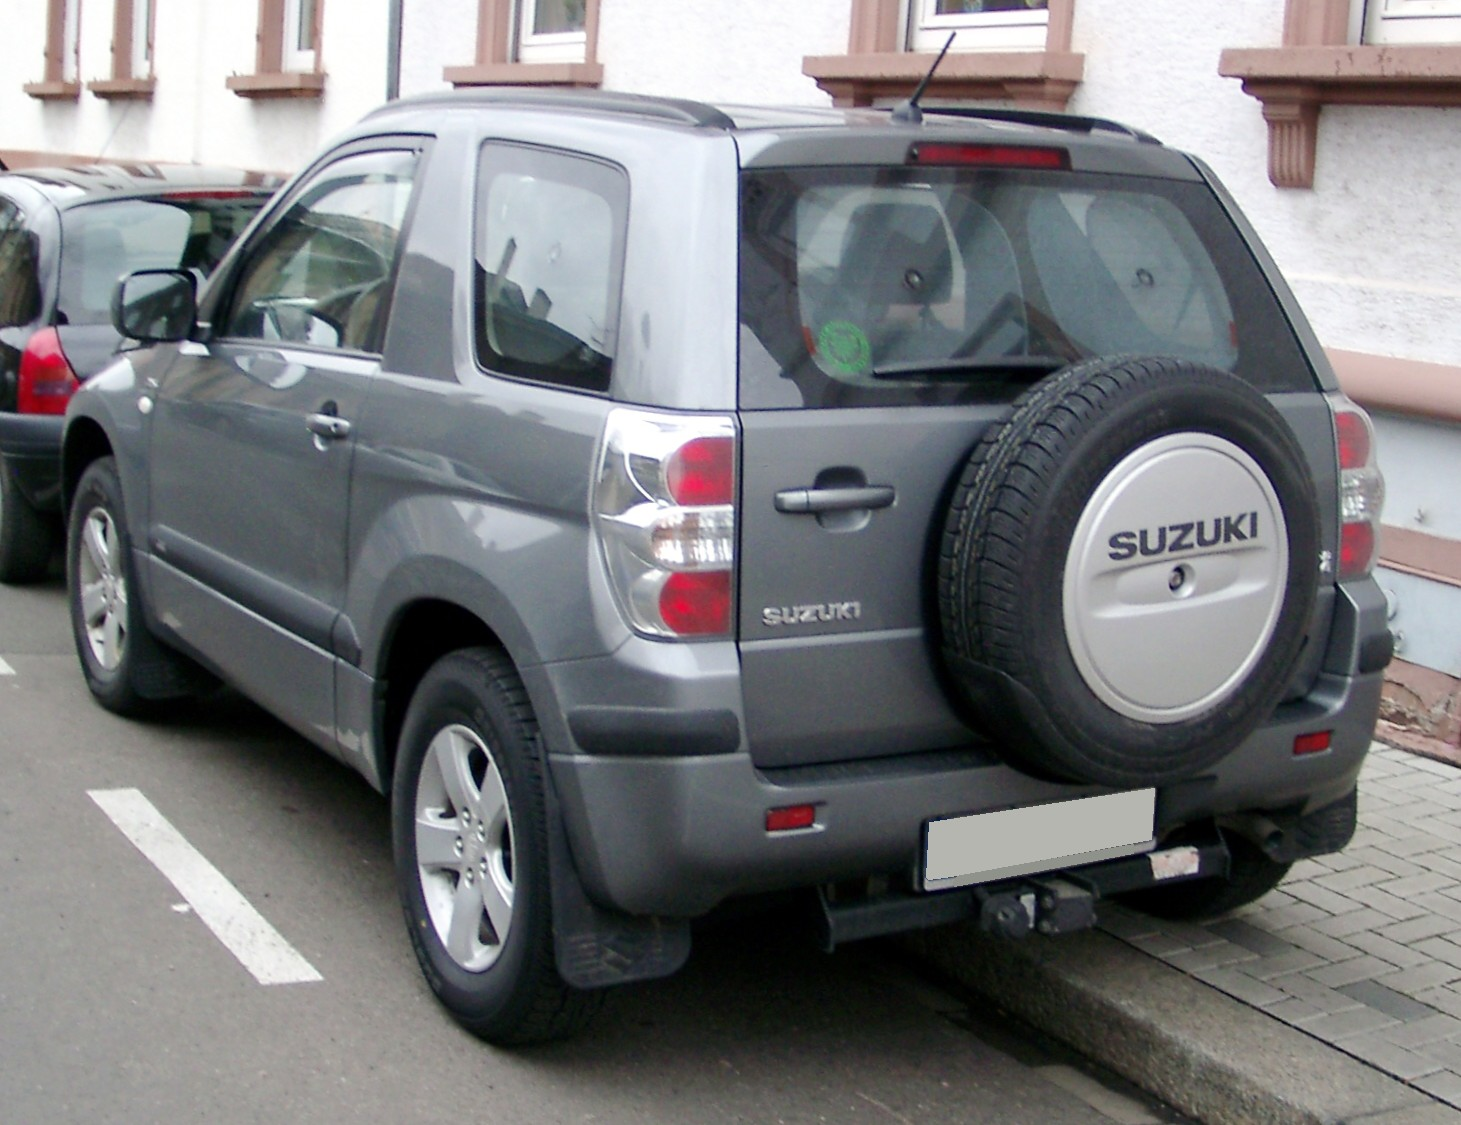 FileSuzuki Grand Vitara Rear 20080118